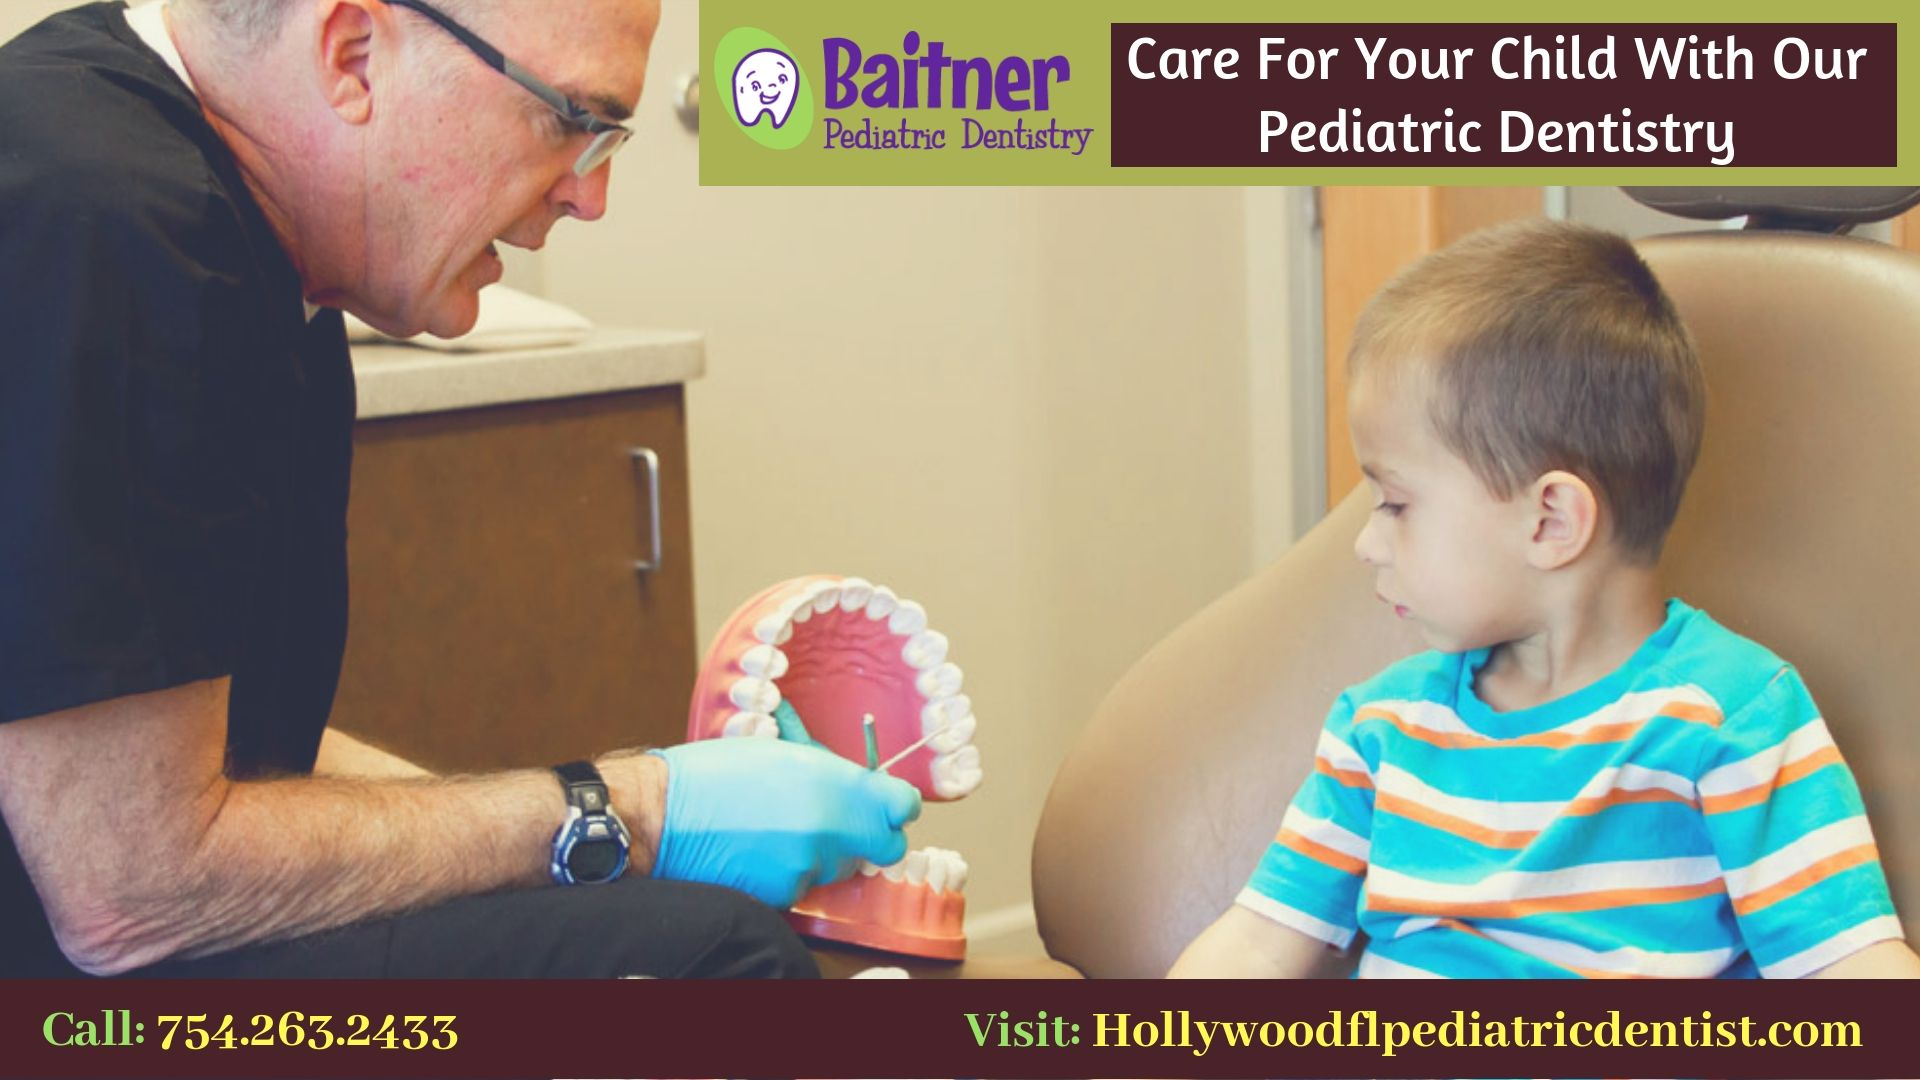 Looking for the compassionate pediatric dentist? At